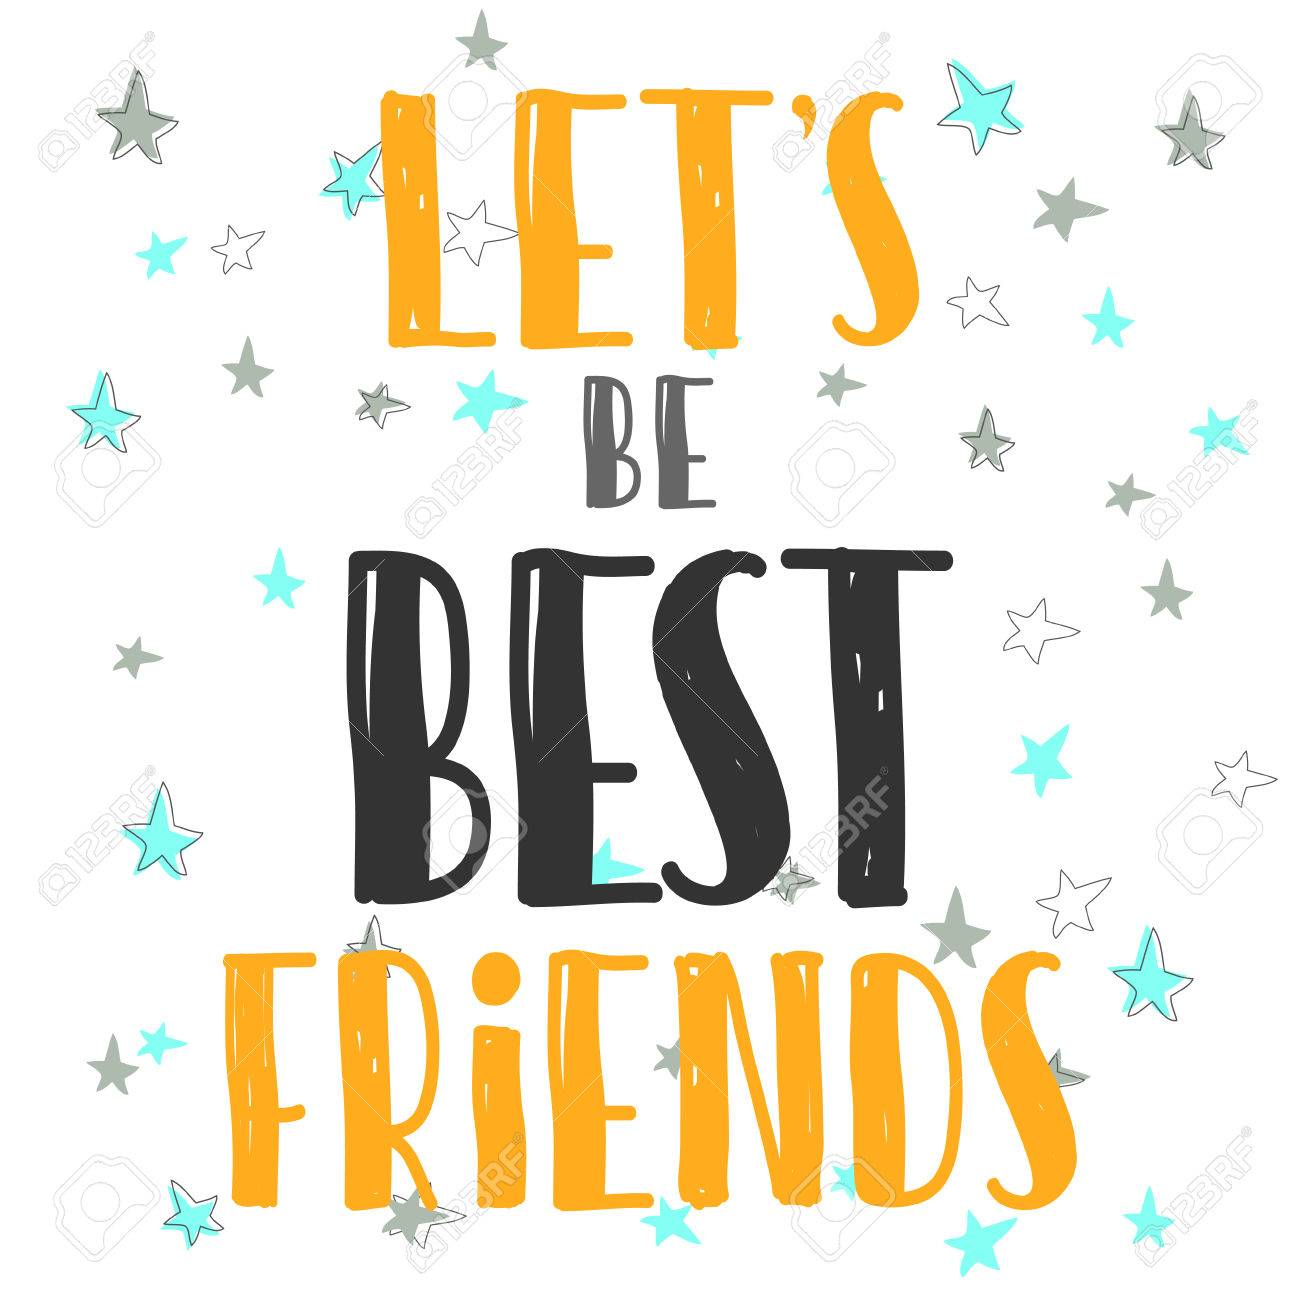 Lets Be Best Friends Quote Stylized Hand Drawn Poster Lettering For Kids Prints Cards